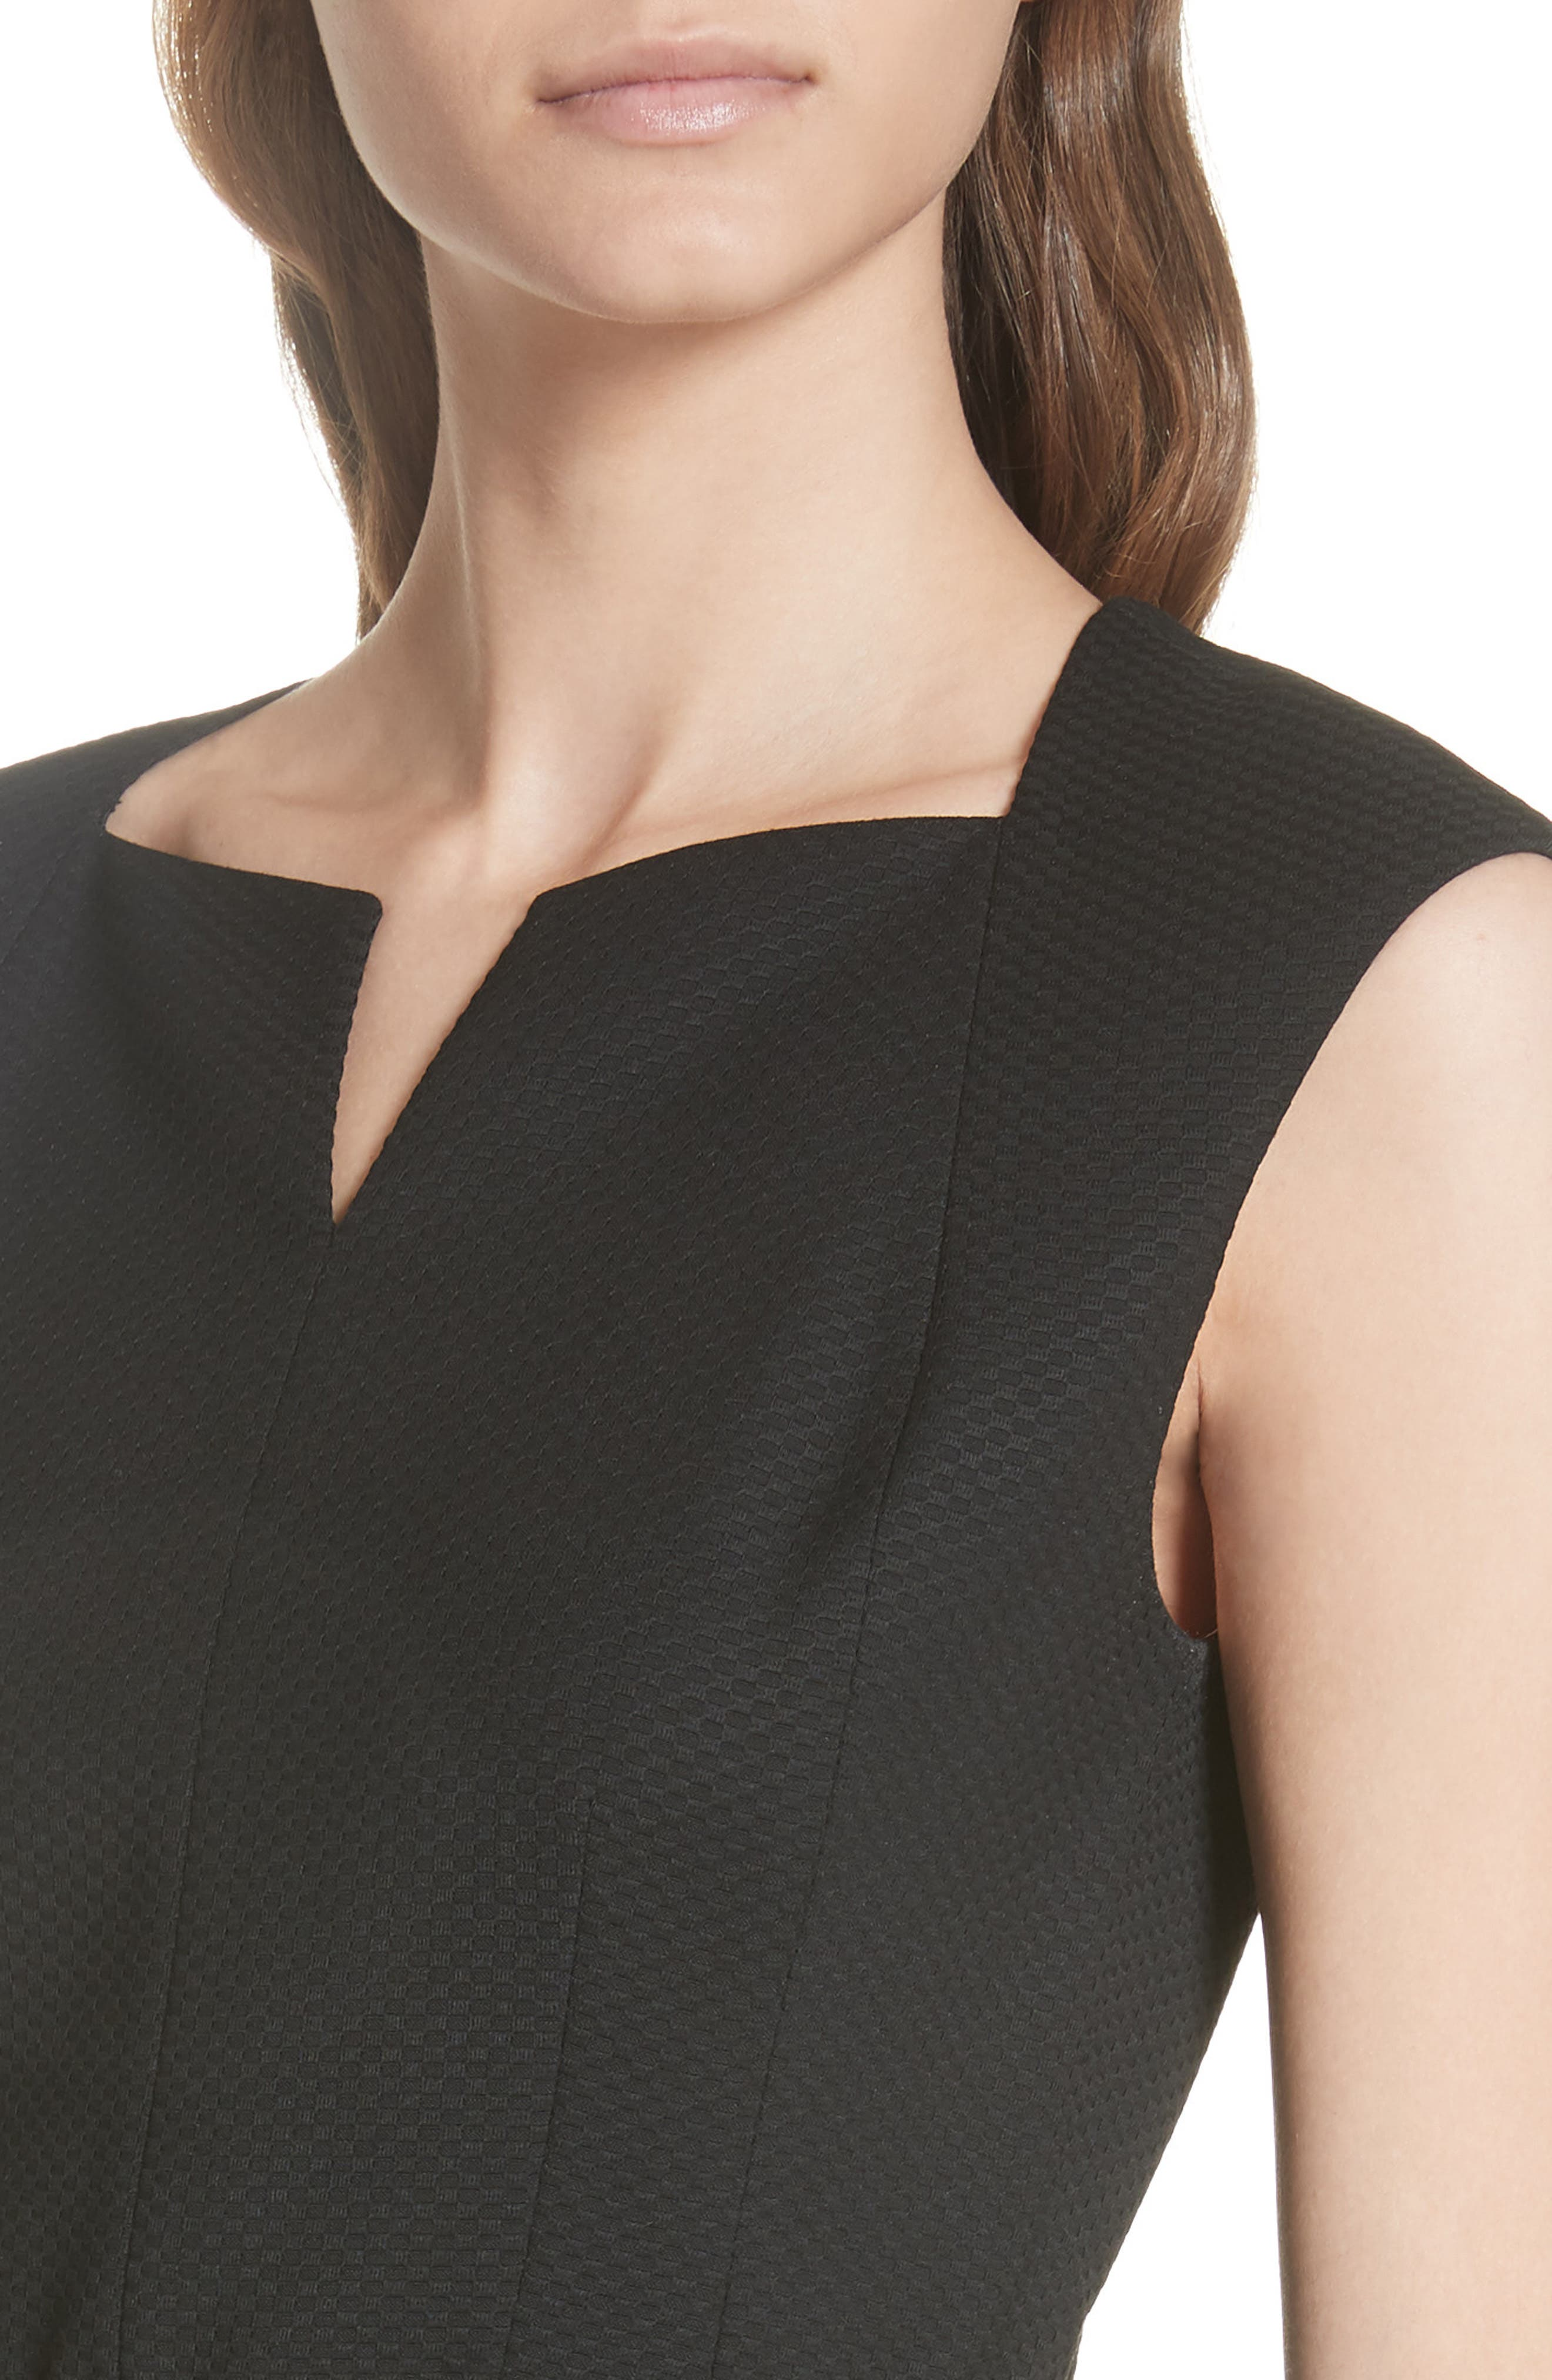 Ted Working Title Textured Peplum Dress,                             Alternate thumbnail 4, color,                             BLACK